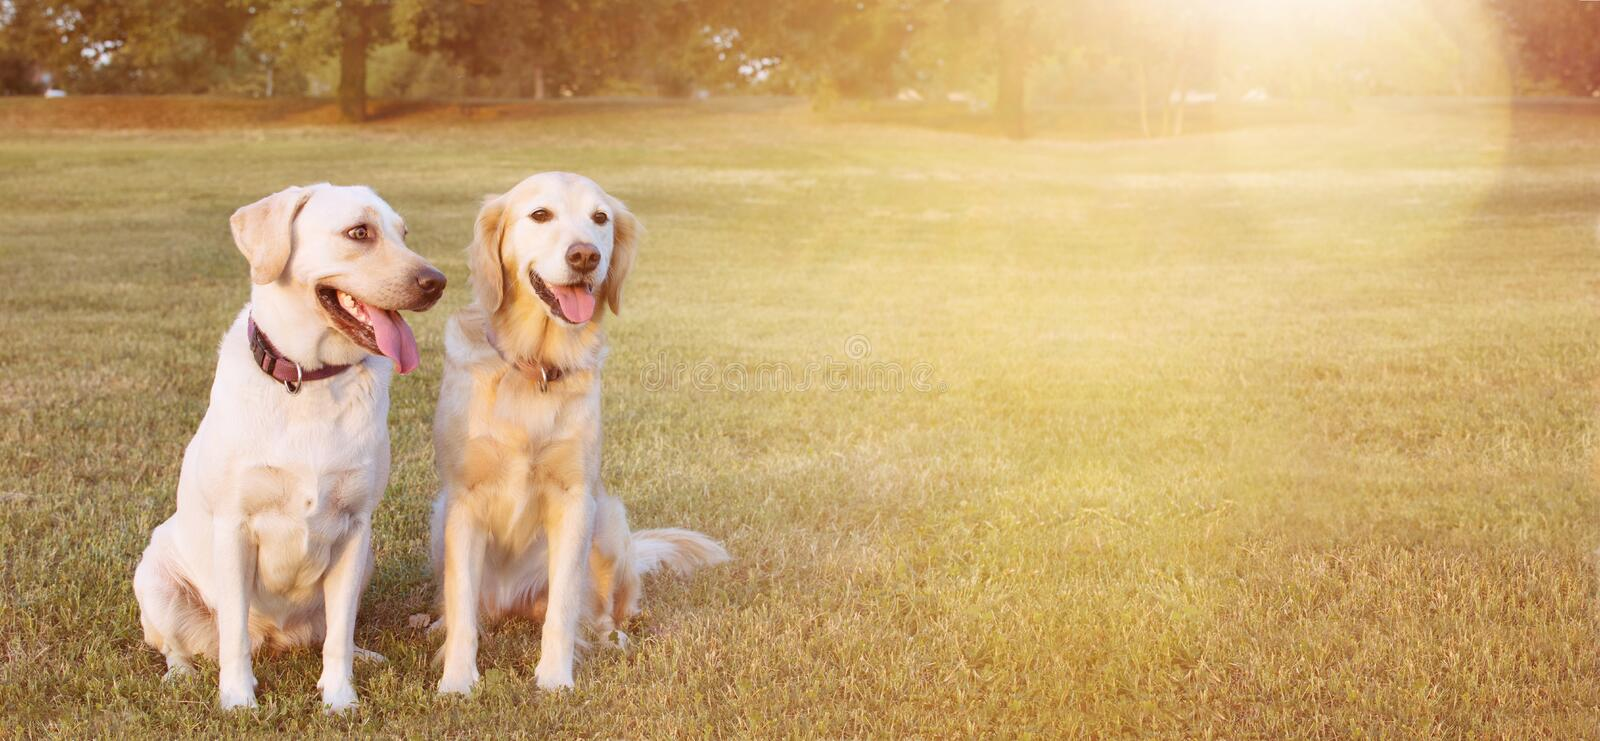 WEBSIDE BANNER TWO HAPPY DOGS LABRADOR AND GOLDEN RETRIEVER SITTING IN THE YELLOW GRASS ON SUMMER HEAT stock photo